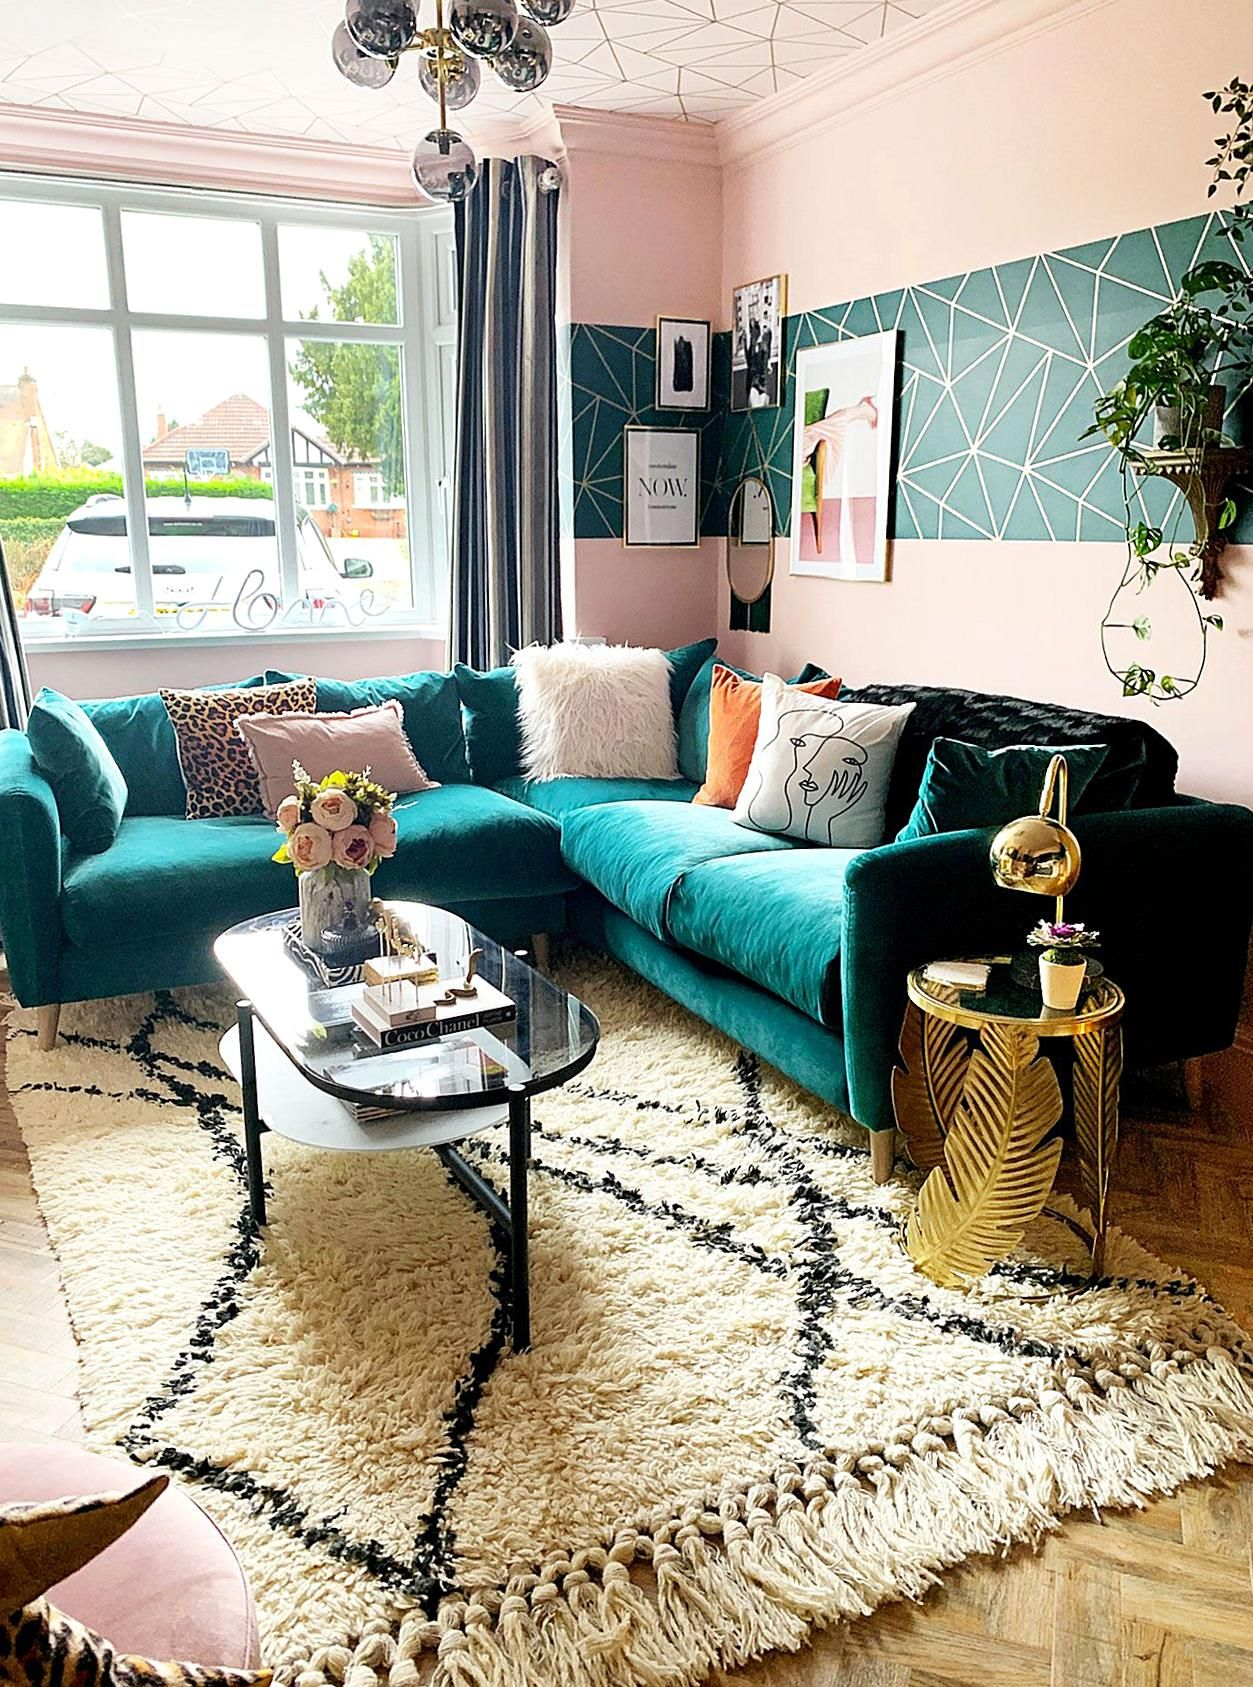 Interior Inspiration With Pink Teal And Gold Living Room Renovation With Ceiling Decor Eclectic Gl In 2020 Gold Living Room Eclectic Living Room Teal Sofa Living Room #teal #and #gold #living #room #decor